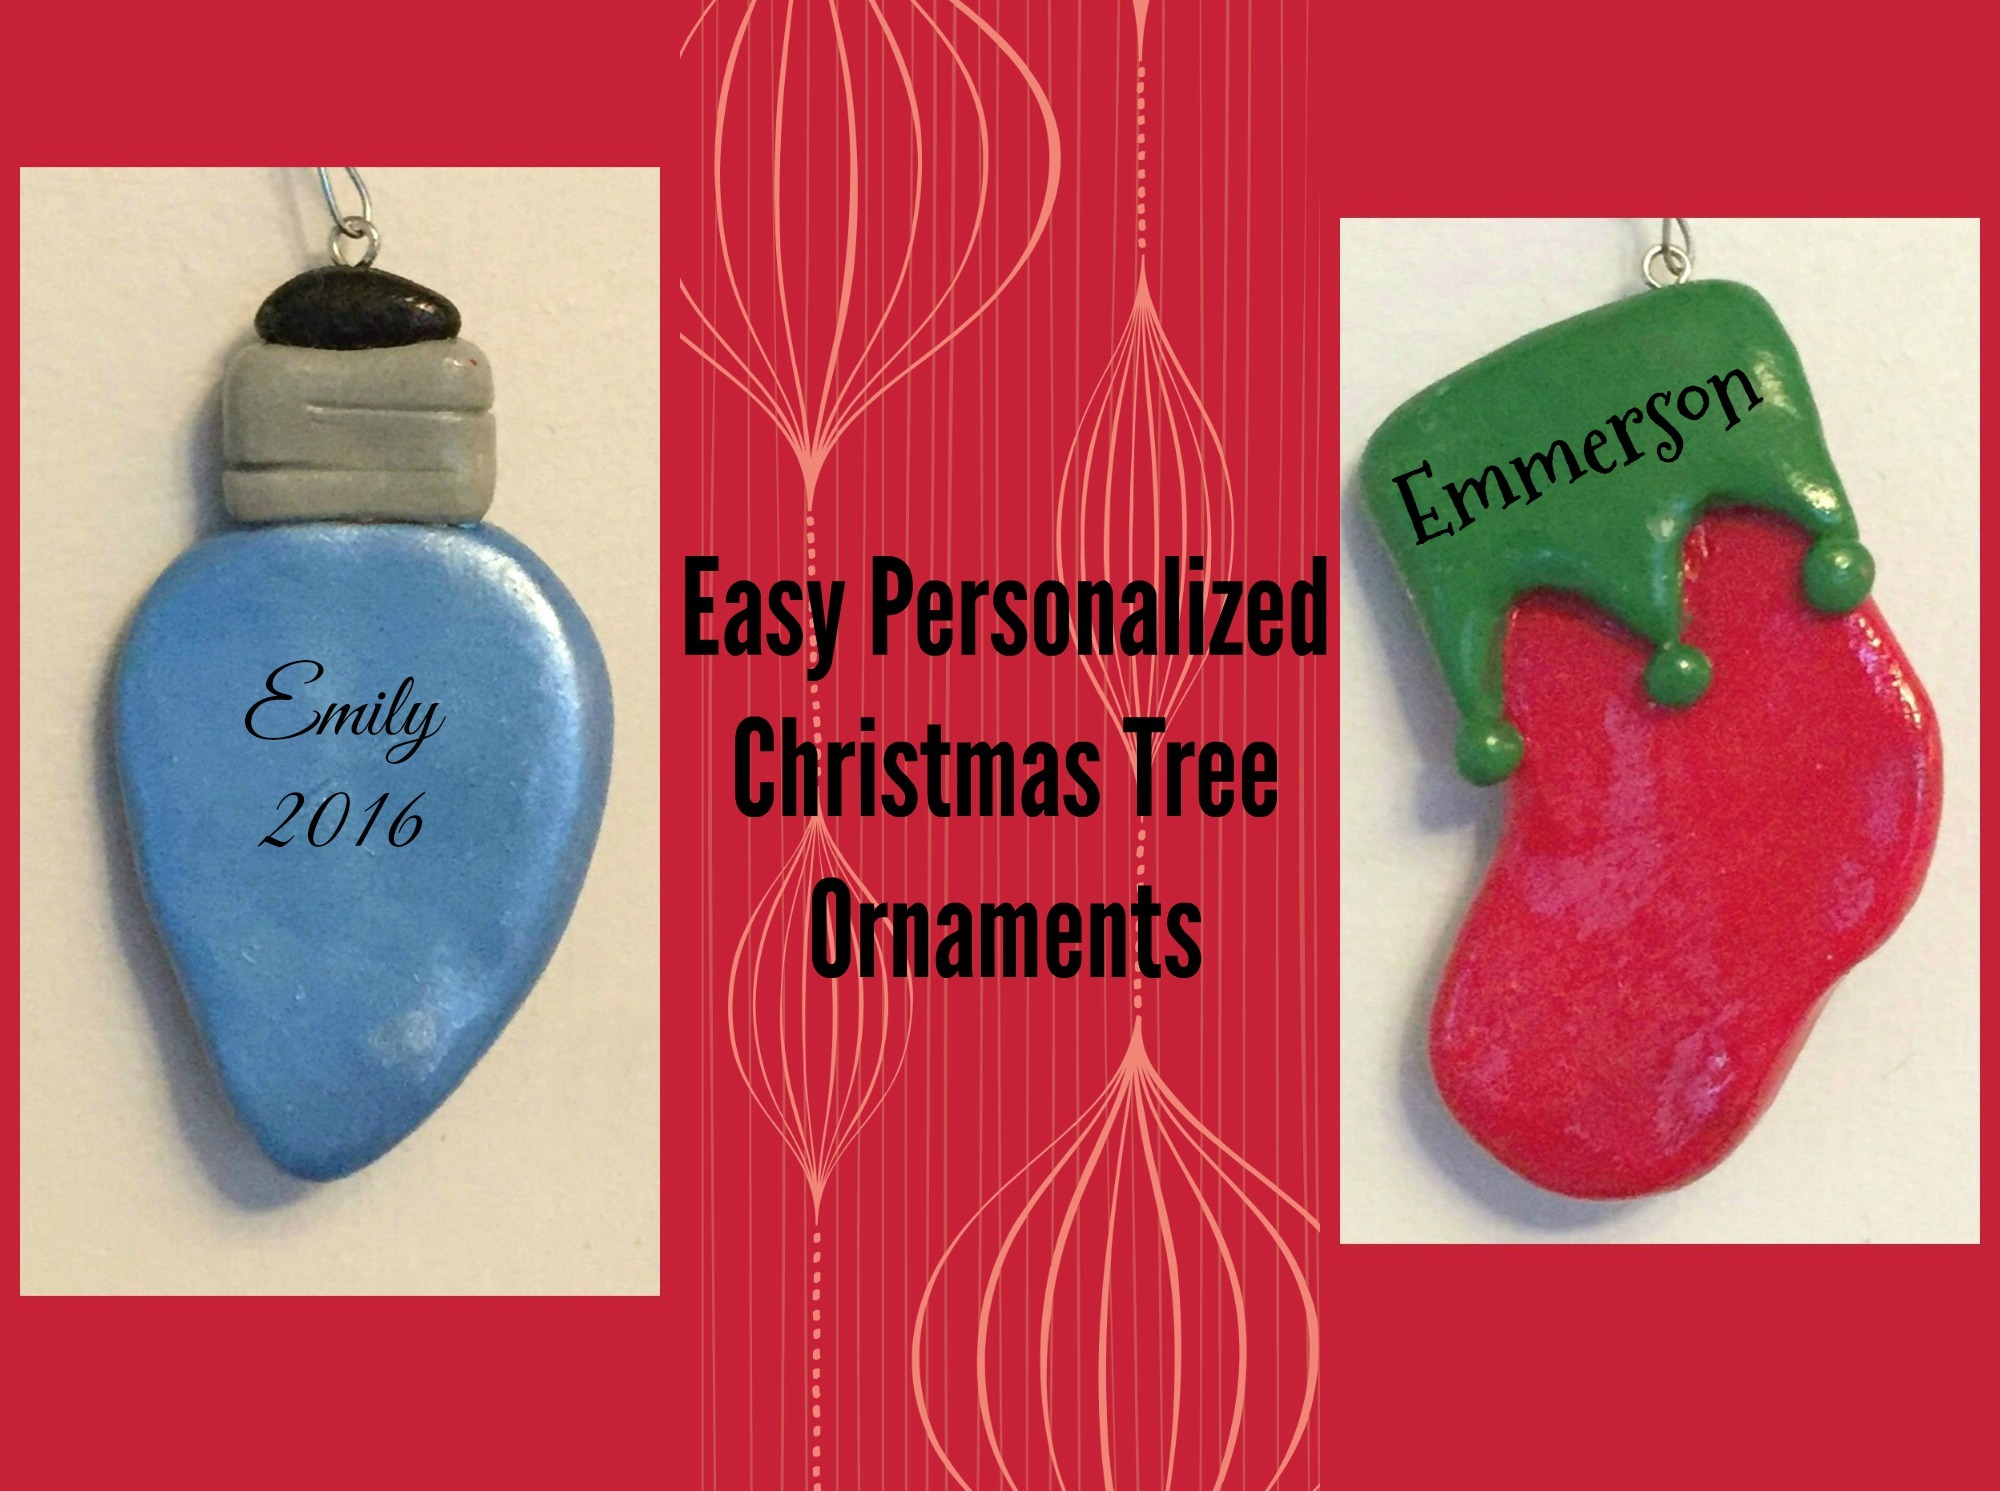 Easy Personalized Christmas Tree Ornaments